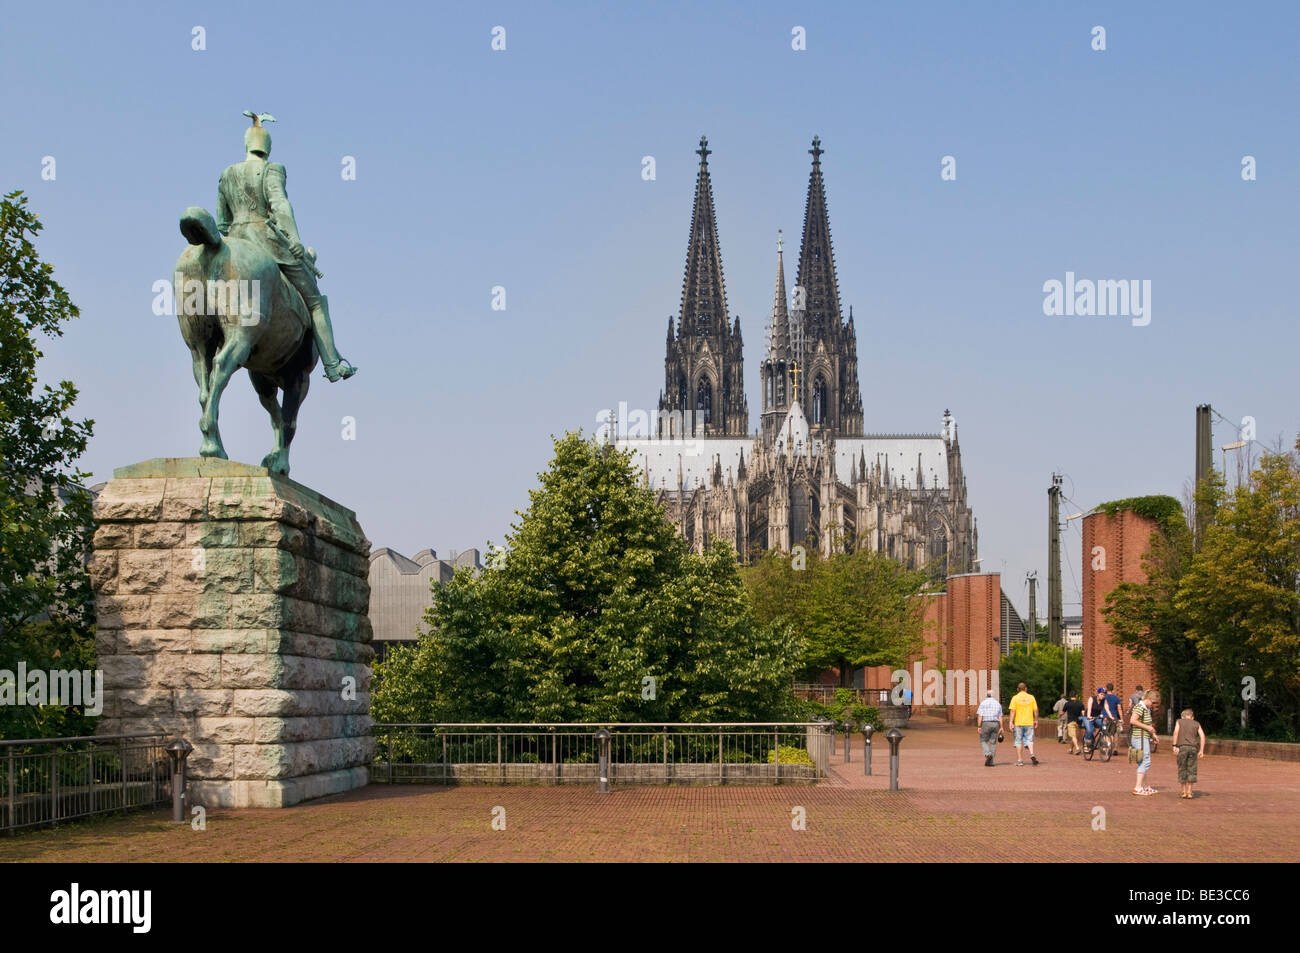 Equestrian statue of the Emperor Wilhelm II of Prussia, at the Hohenzollernbruecke Bridge, cathedral in the back, - Stock Image